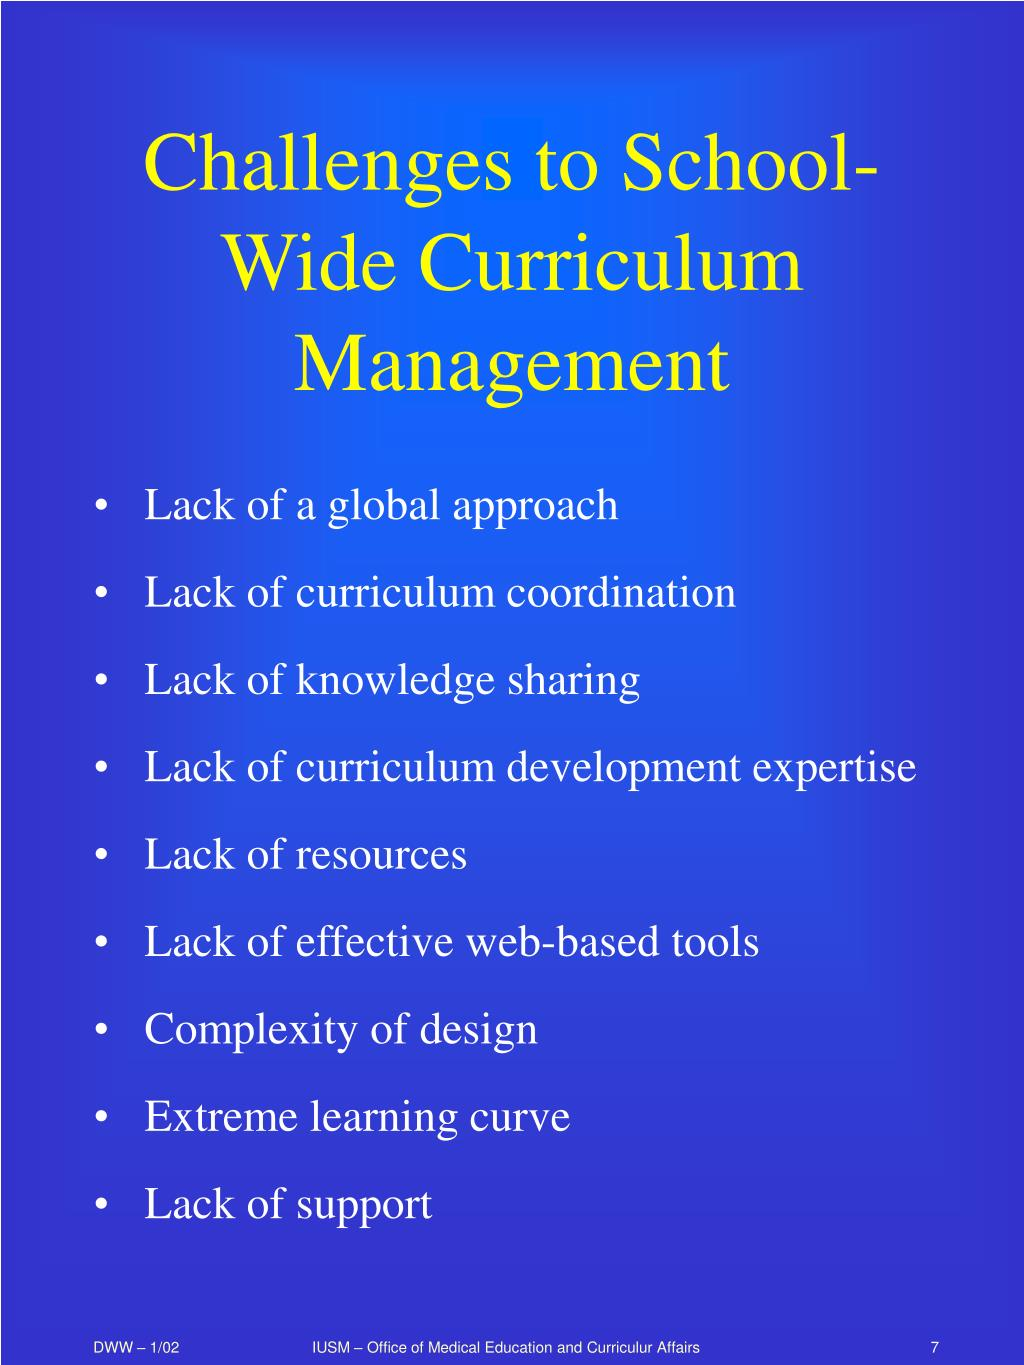 Challenges to School-Wide Curriculum Management